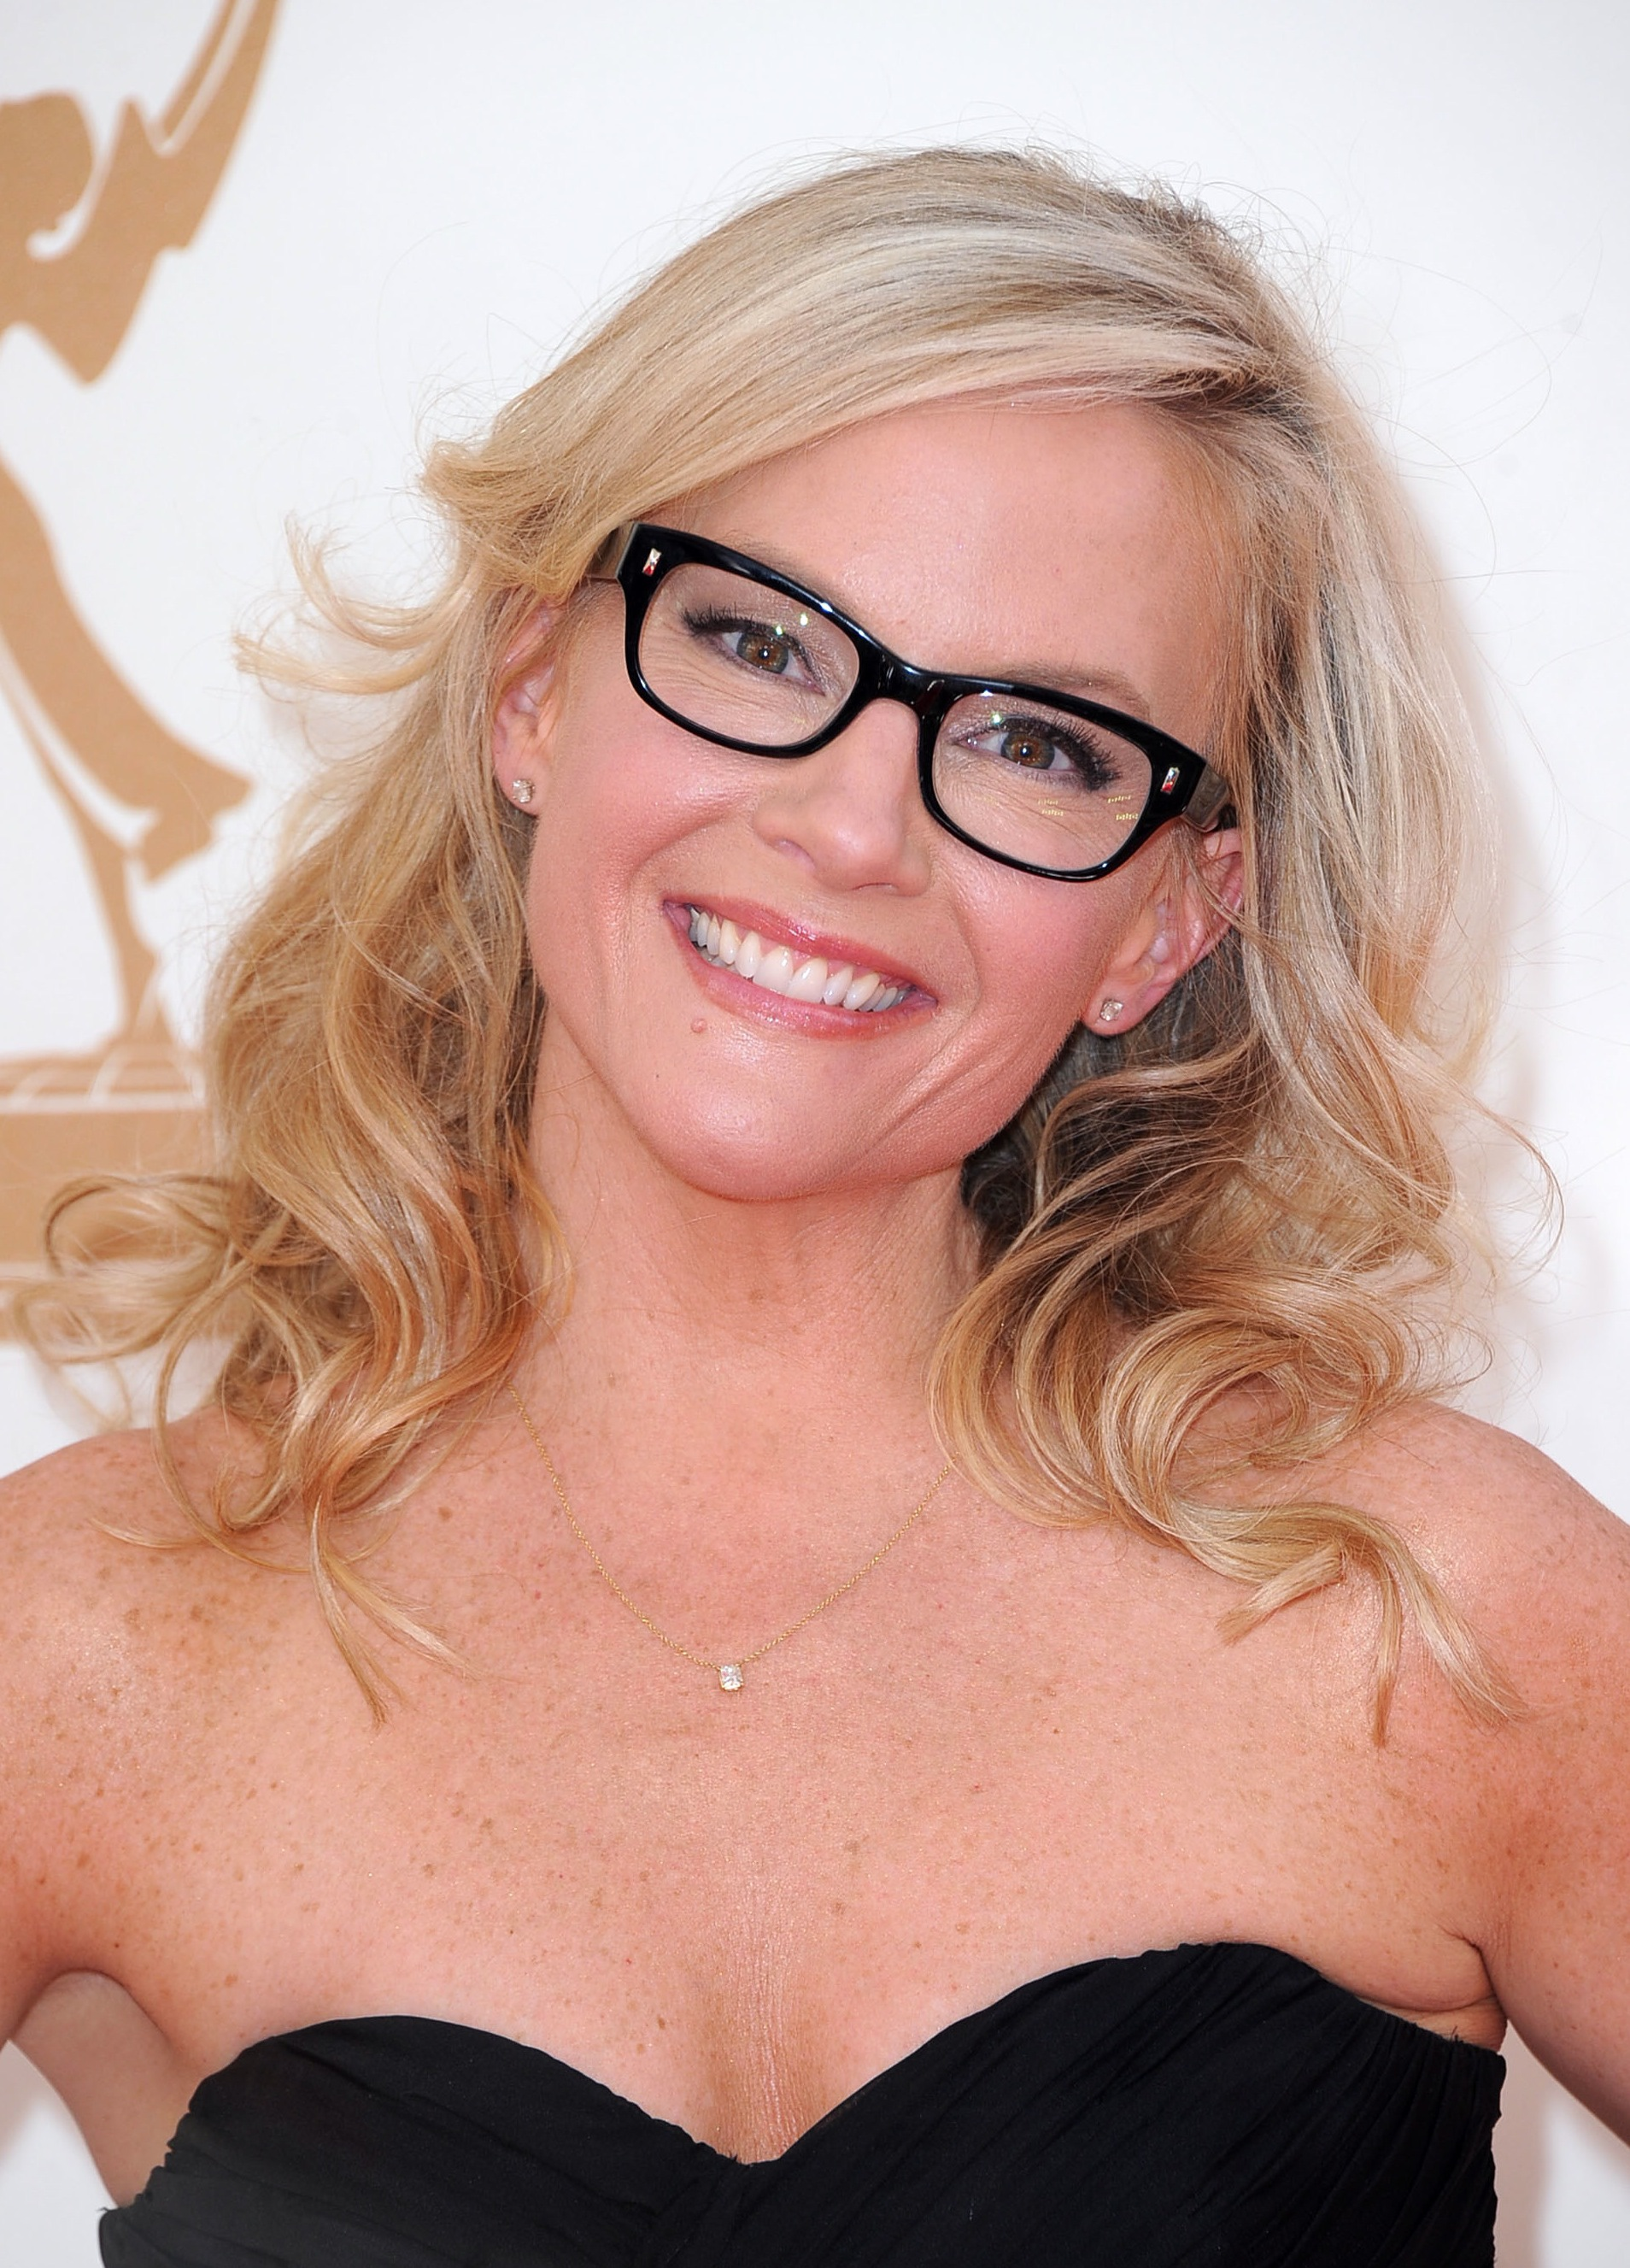 rachael harris youngrachael harris instagram, rachael harris harry potter, rachael harris yoga, rachael harris listal, rachael harris height, rachael harris, rachael harris imdb, rachael harris wiki, rachael harris twitter, rachael harris young, rachel harris model, rachael harris movies, rachael harris husband, rachael harris net worth, rachael harris facebook, rachael harris age, rachael harris measurements